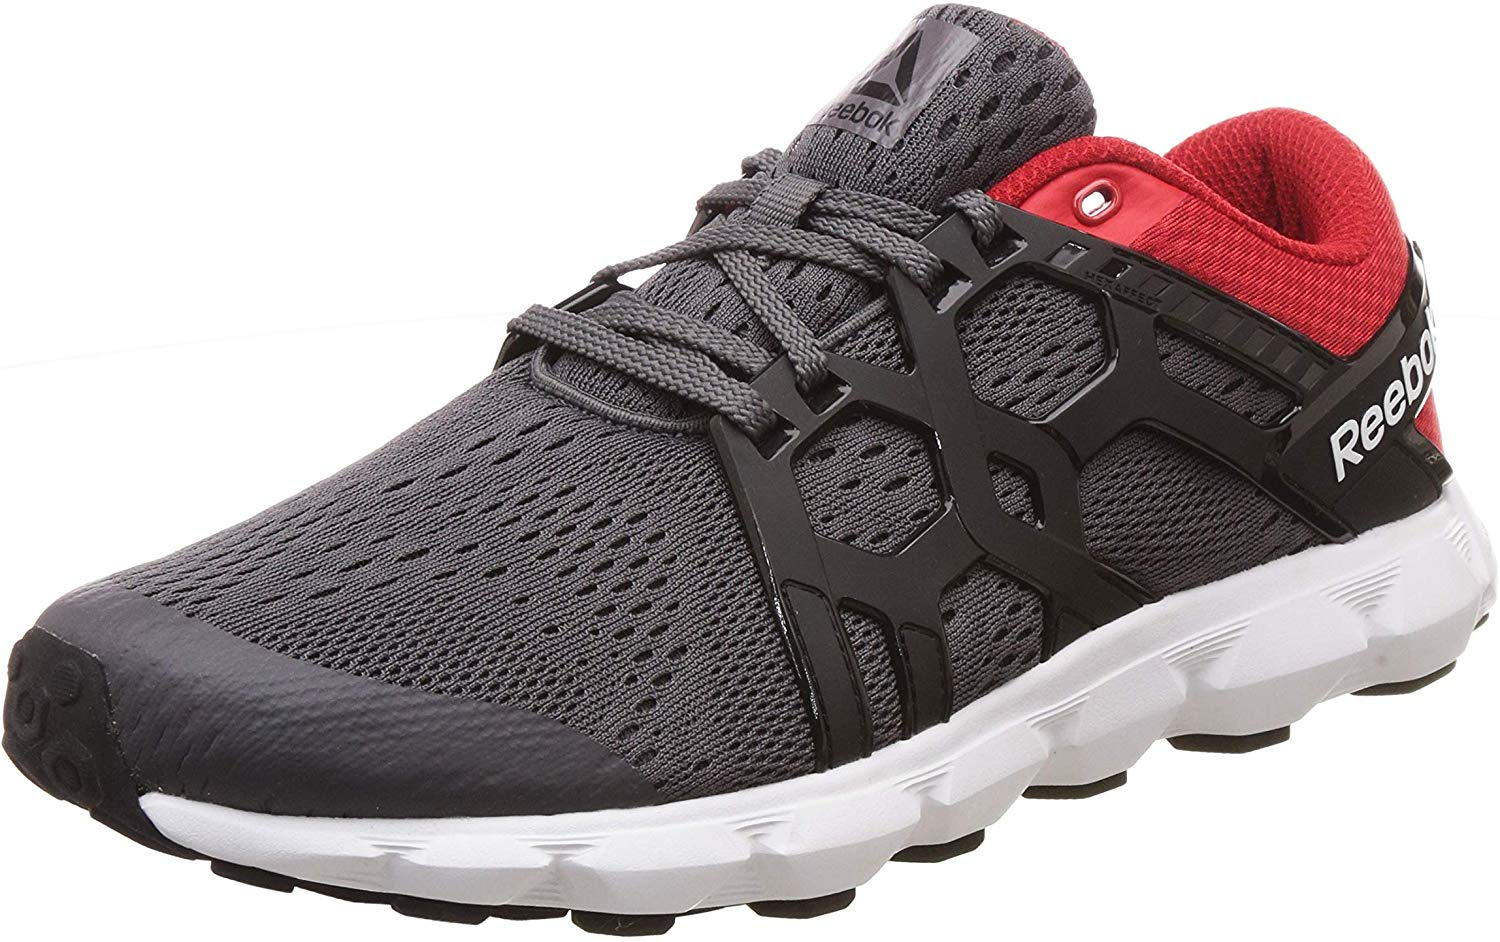 Reebok Gusto Run Xtreme Lp Shoes